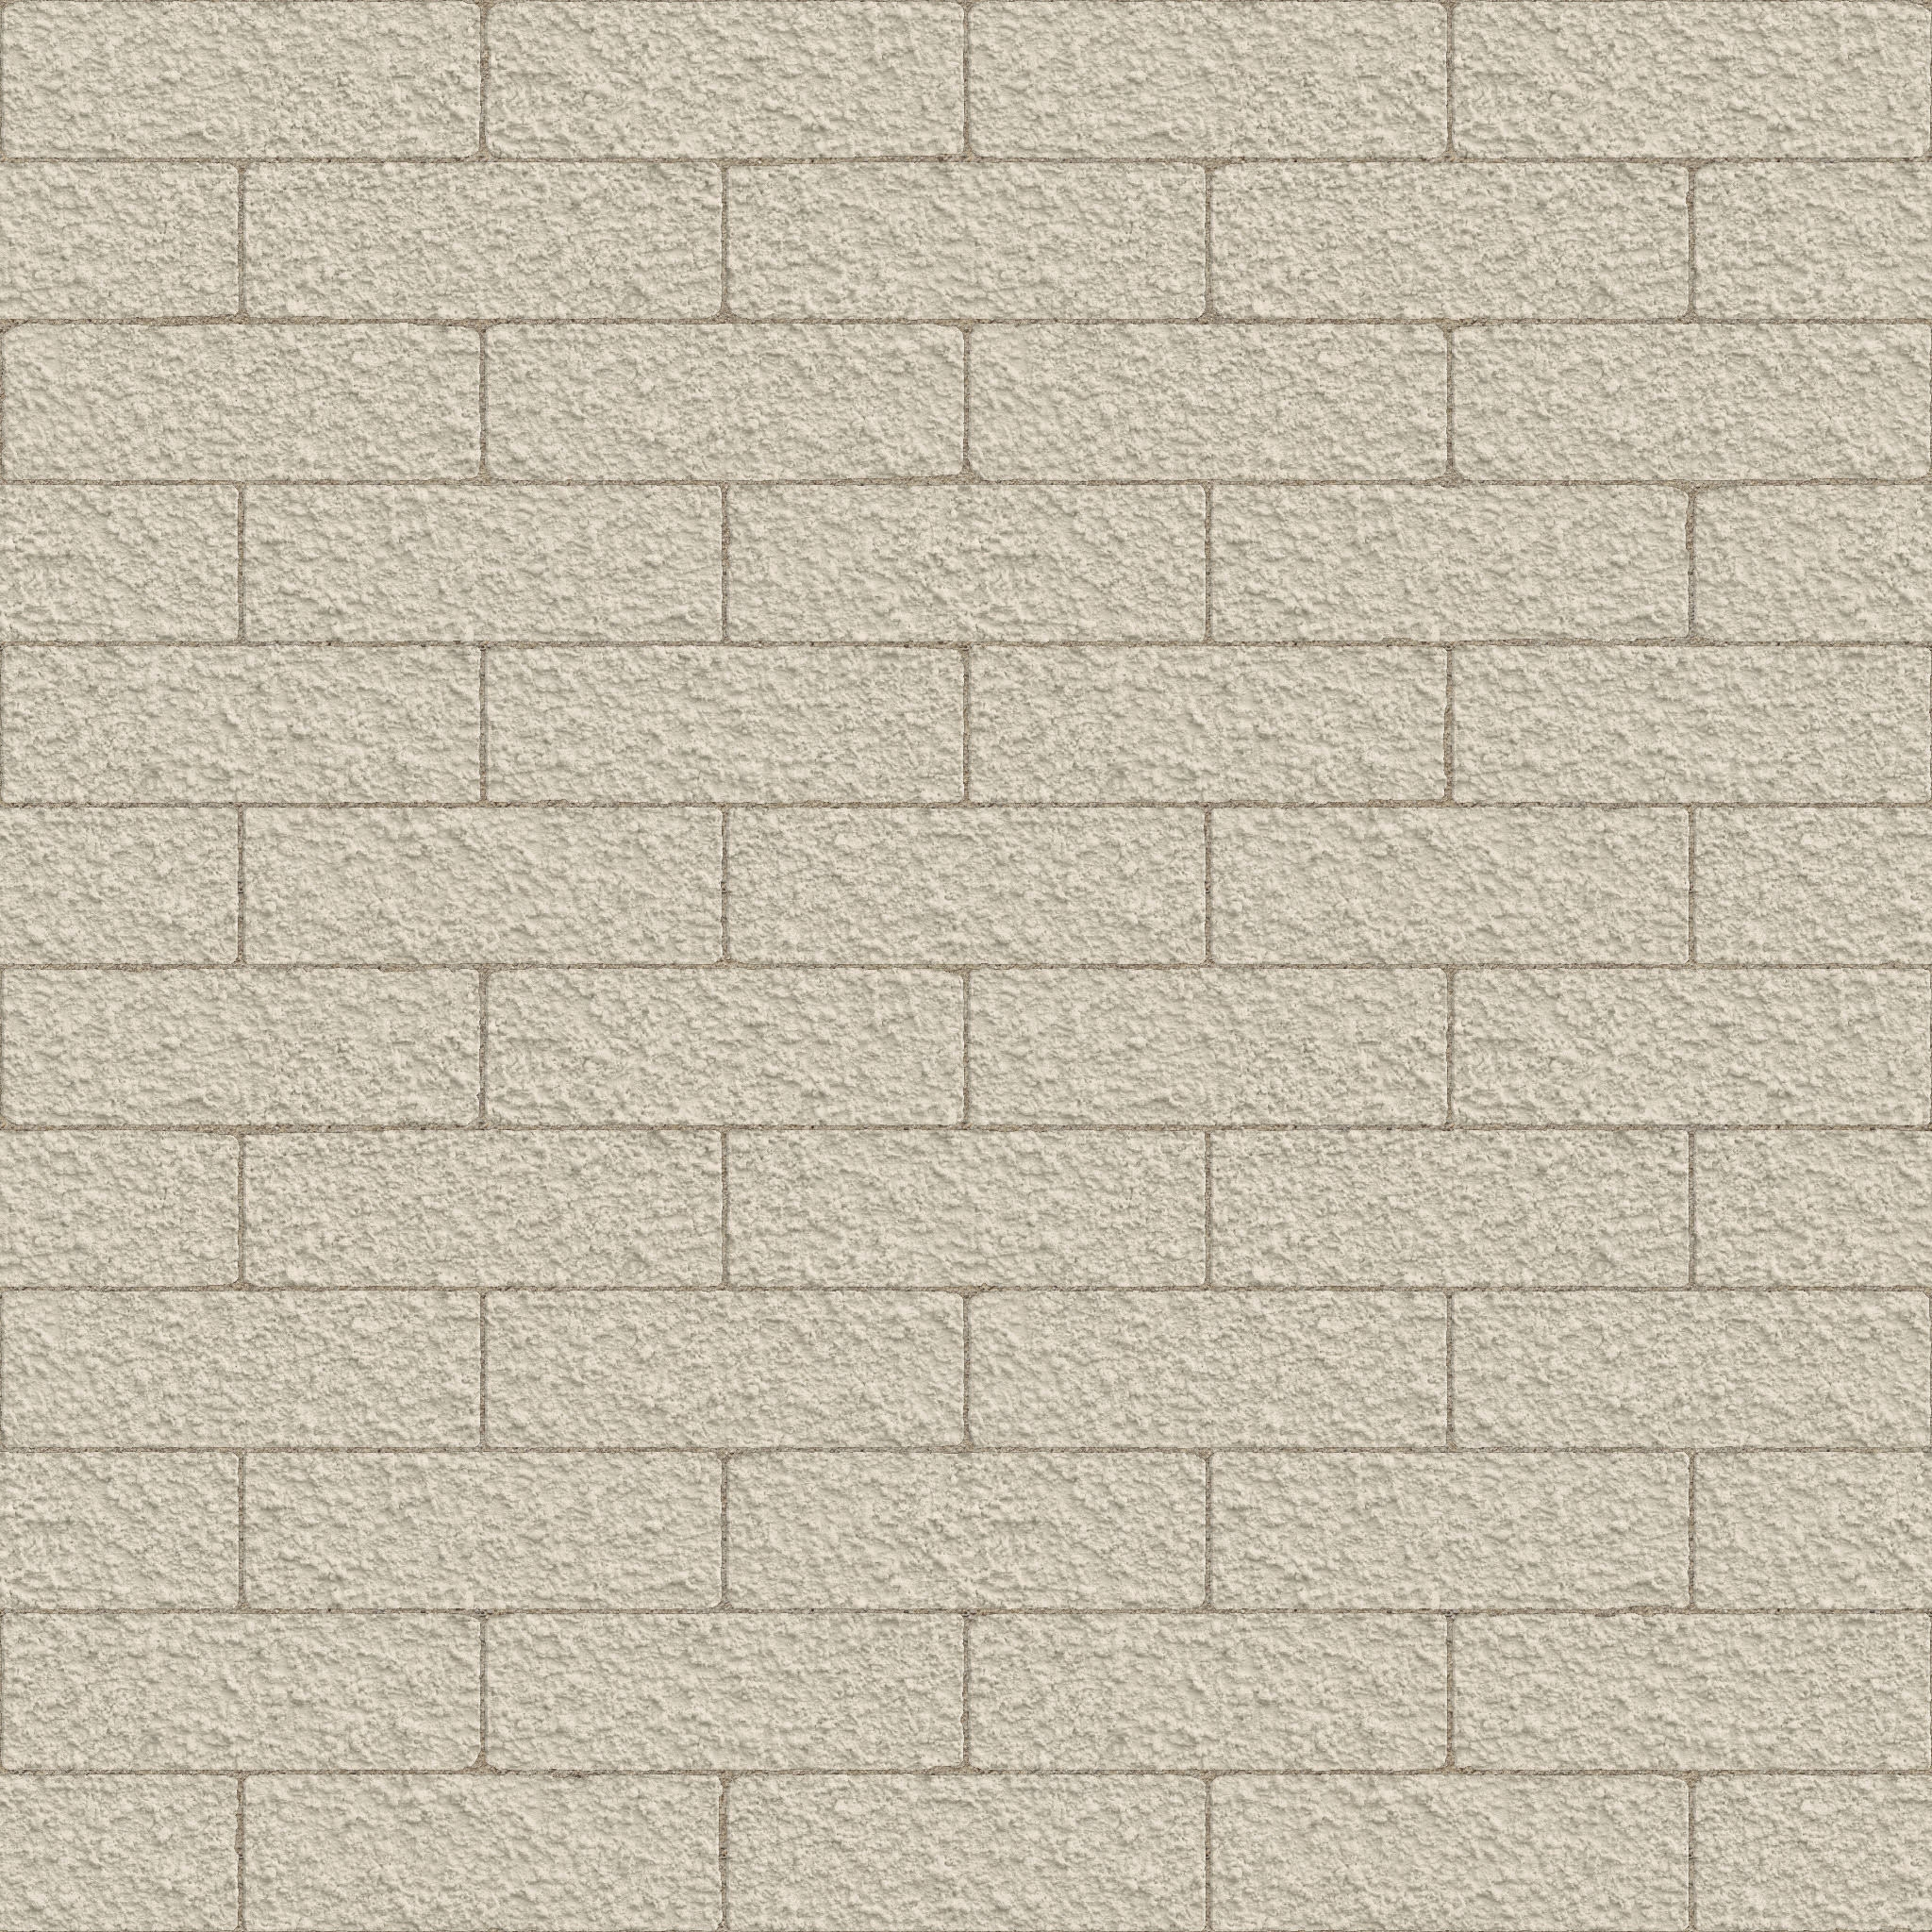 Texture Of Interior Wall Styles